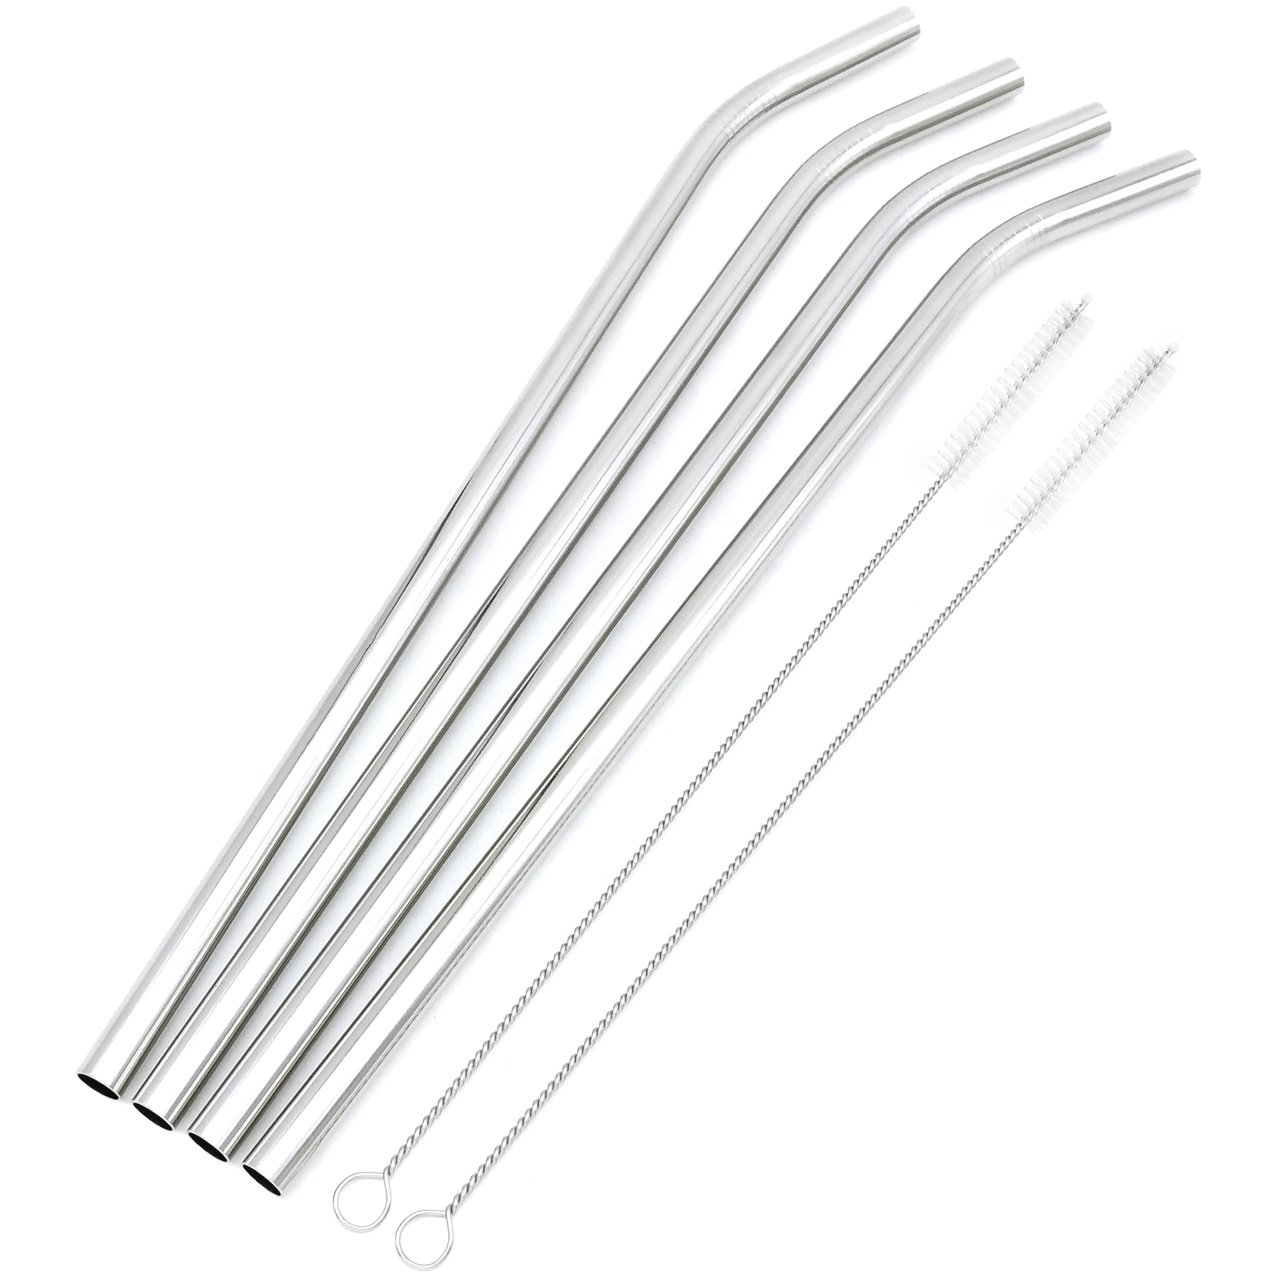 Big Drinking Straws Reusable 12'' Extra Long 9mm Extra Wide SUS 304 Food-Grade 18/8 Stainless Steel - Set of 4 with 2 Cleaning Brushes - Bent by GFDesign